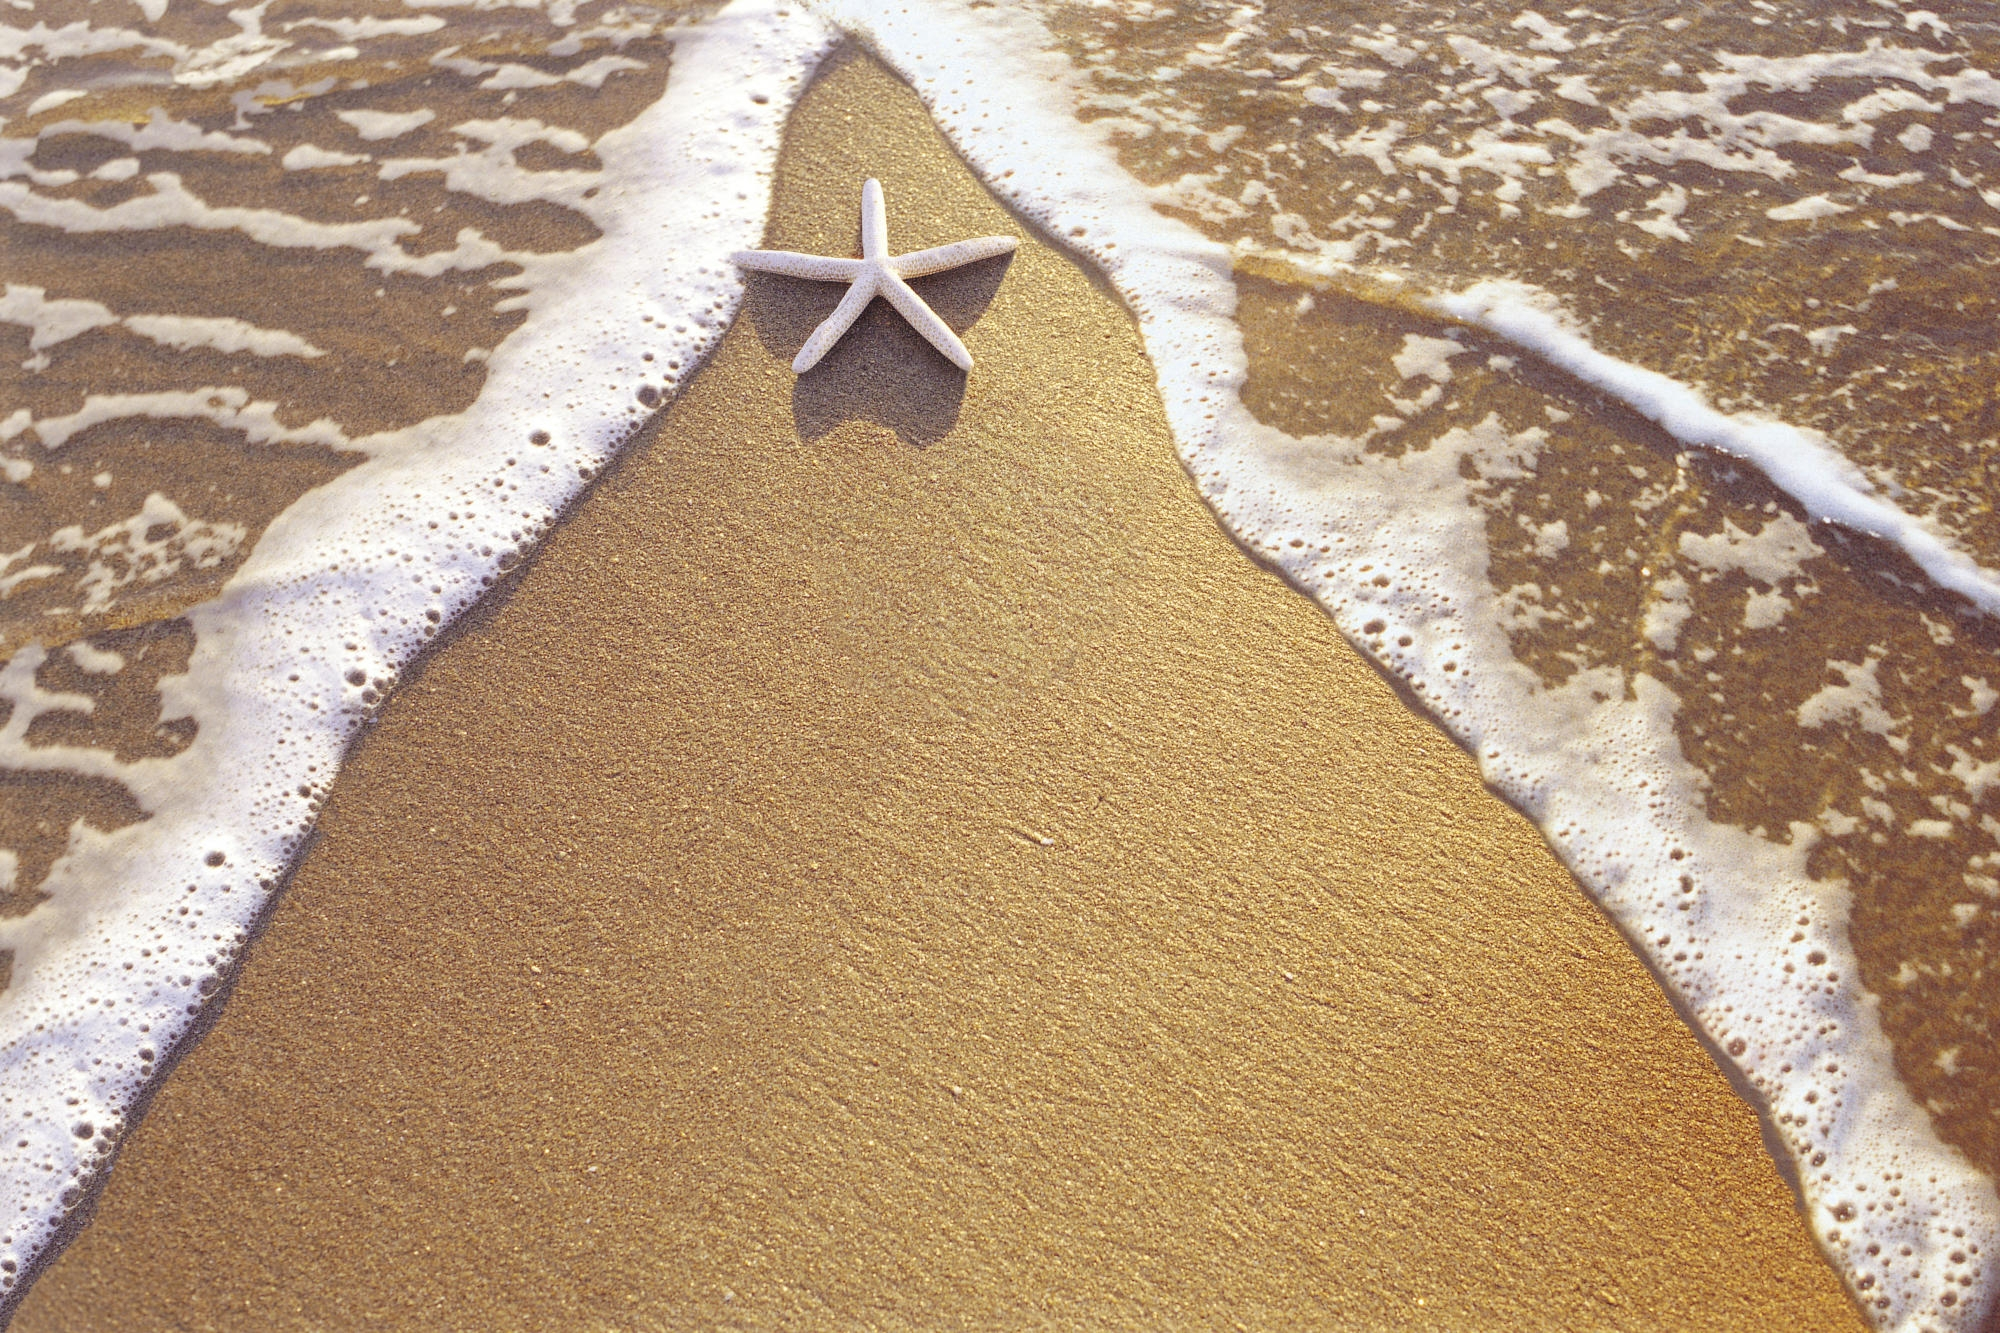 58551 download wallpaper Nature, Starfish, Sand, Sea, Foam, Triangle screensavers and pictures for free